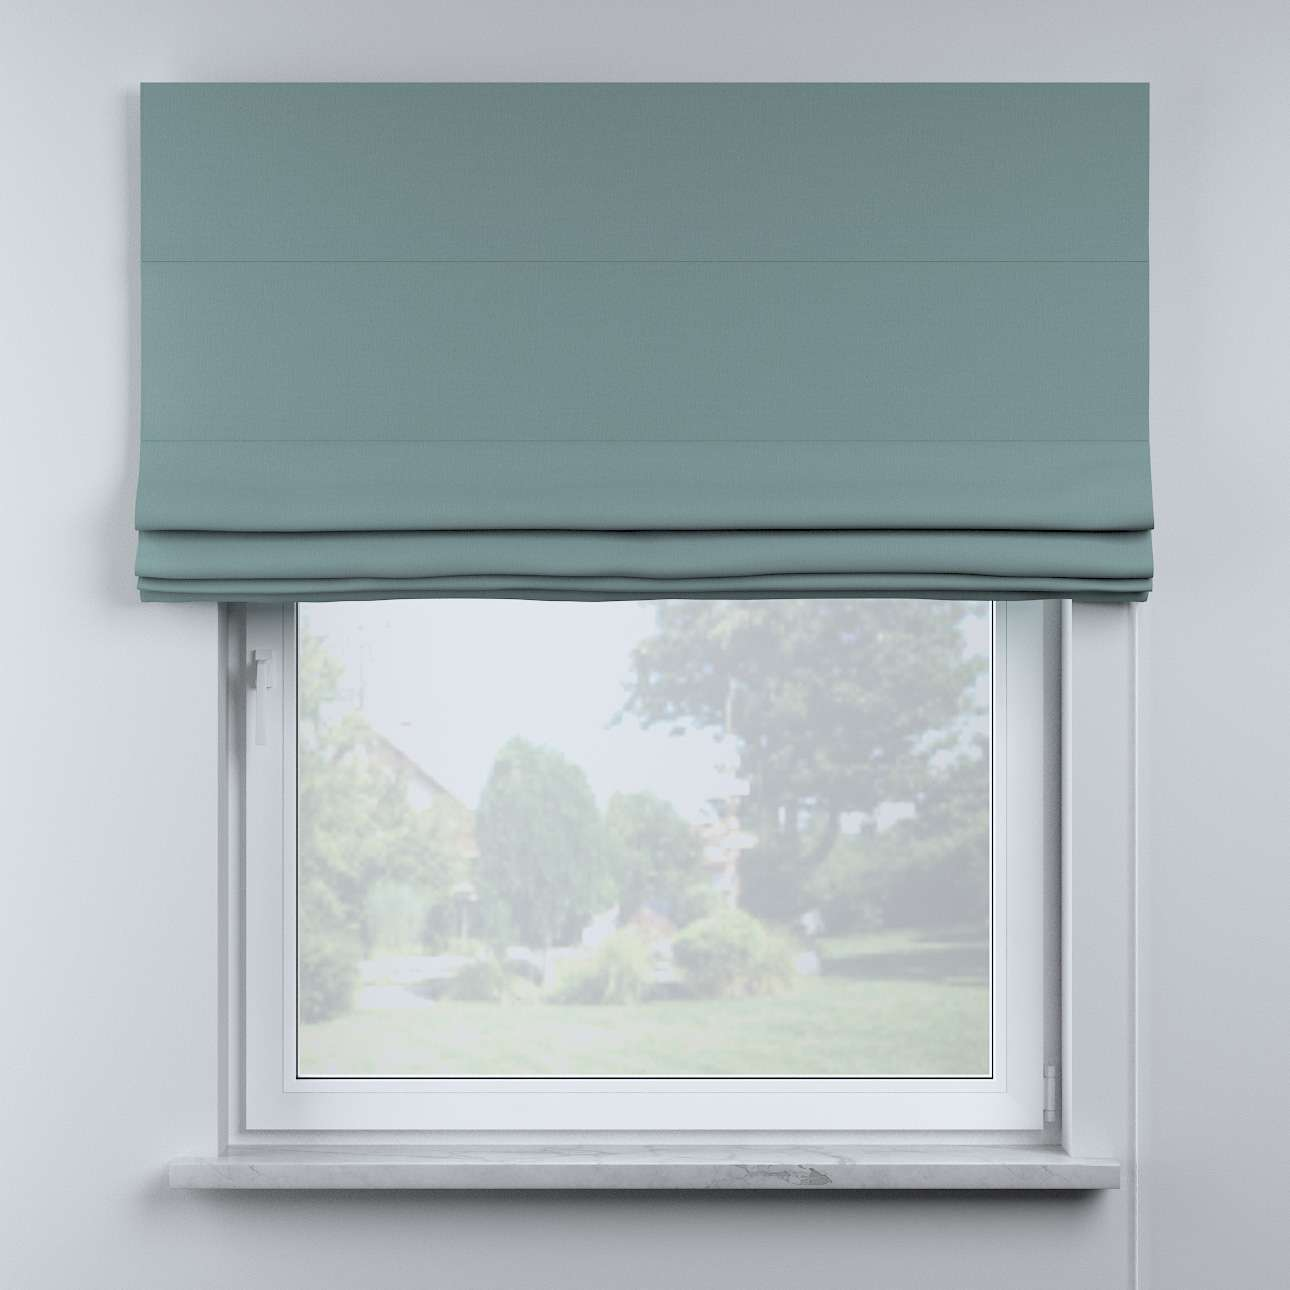 Billie roman blind in collection Cotton Story, fabric: 702-40